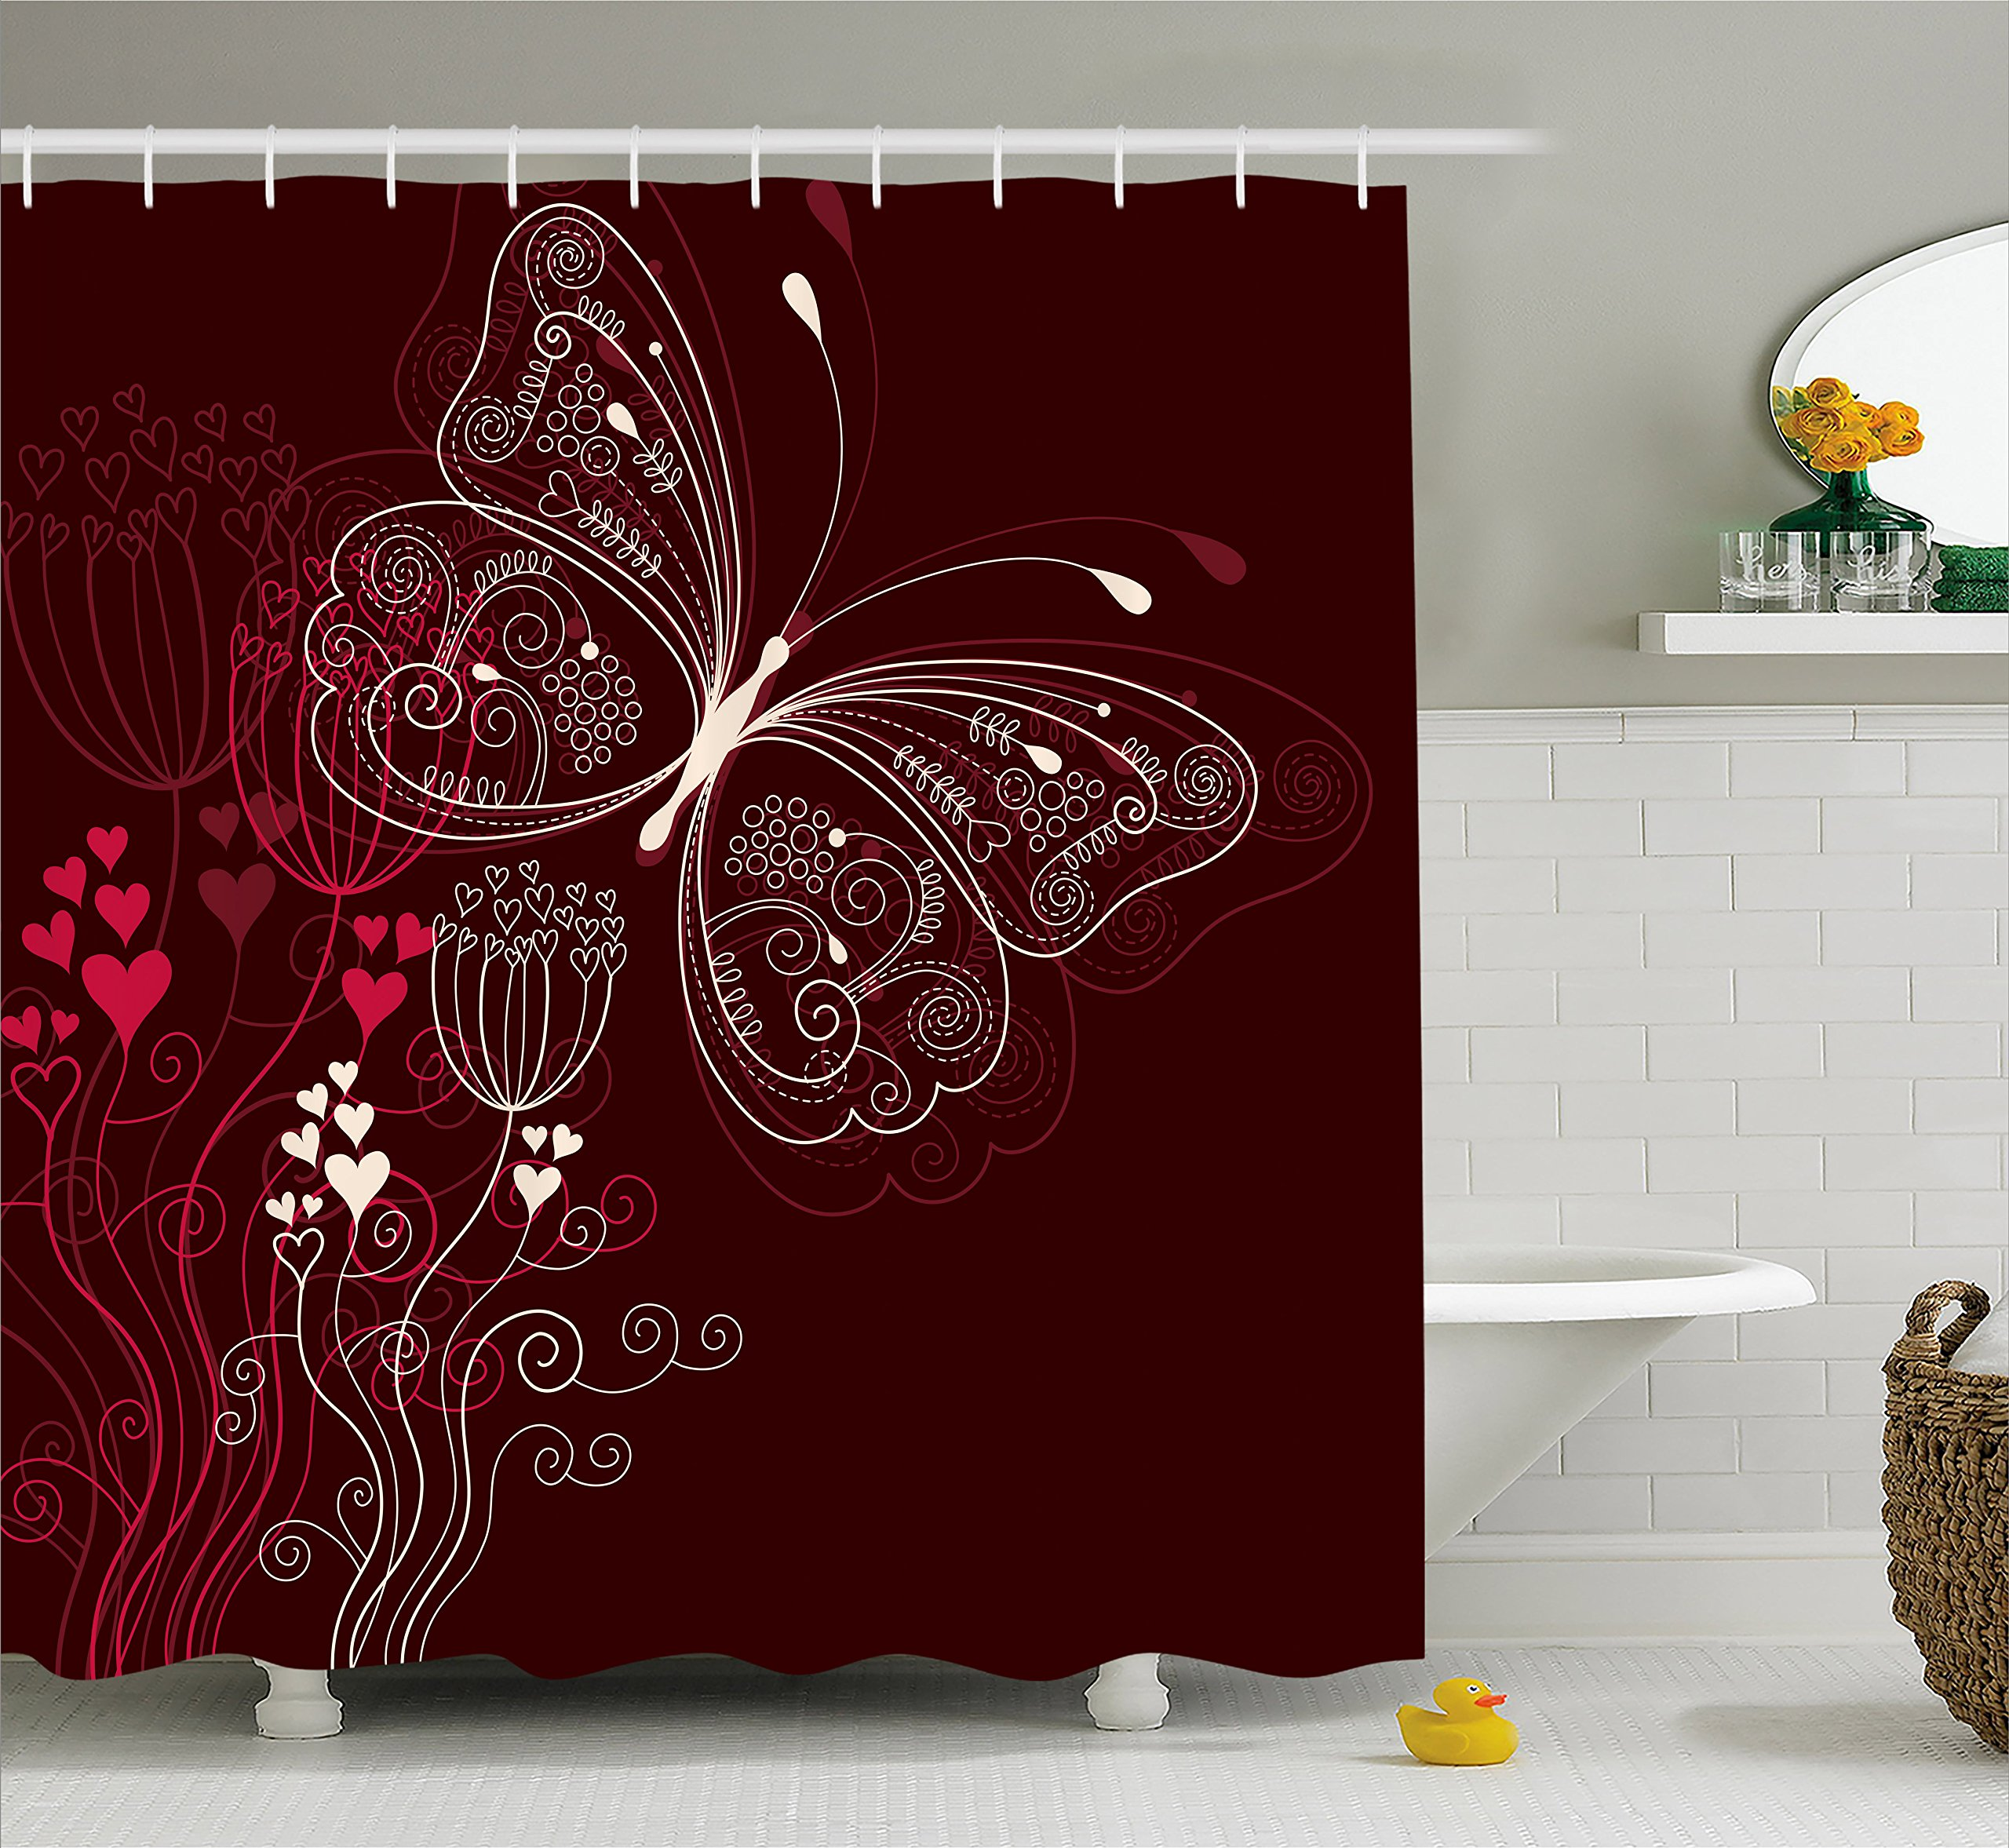 Ambesonne Romantic Shower Curtain, Abstract Floral Heart Pattern with Butterfly Motif Romantic Illustration, Cloth Fabric Bathroom Decor Set with Hooks, 84 Inches Extra Long, Maroon Red Beige